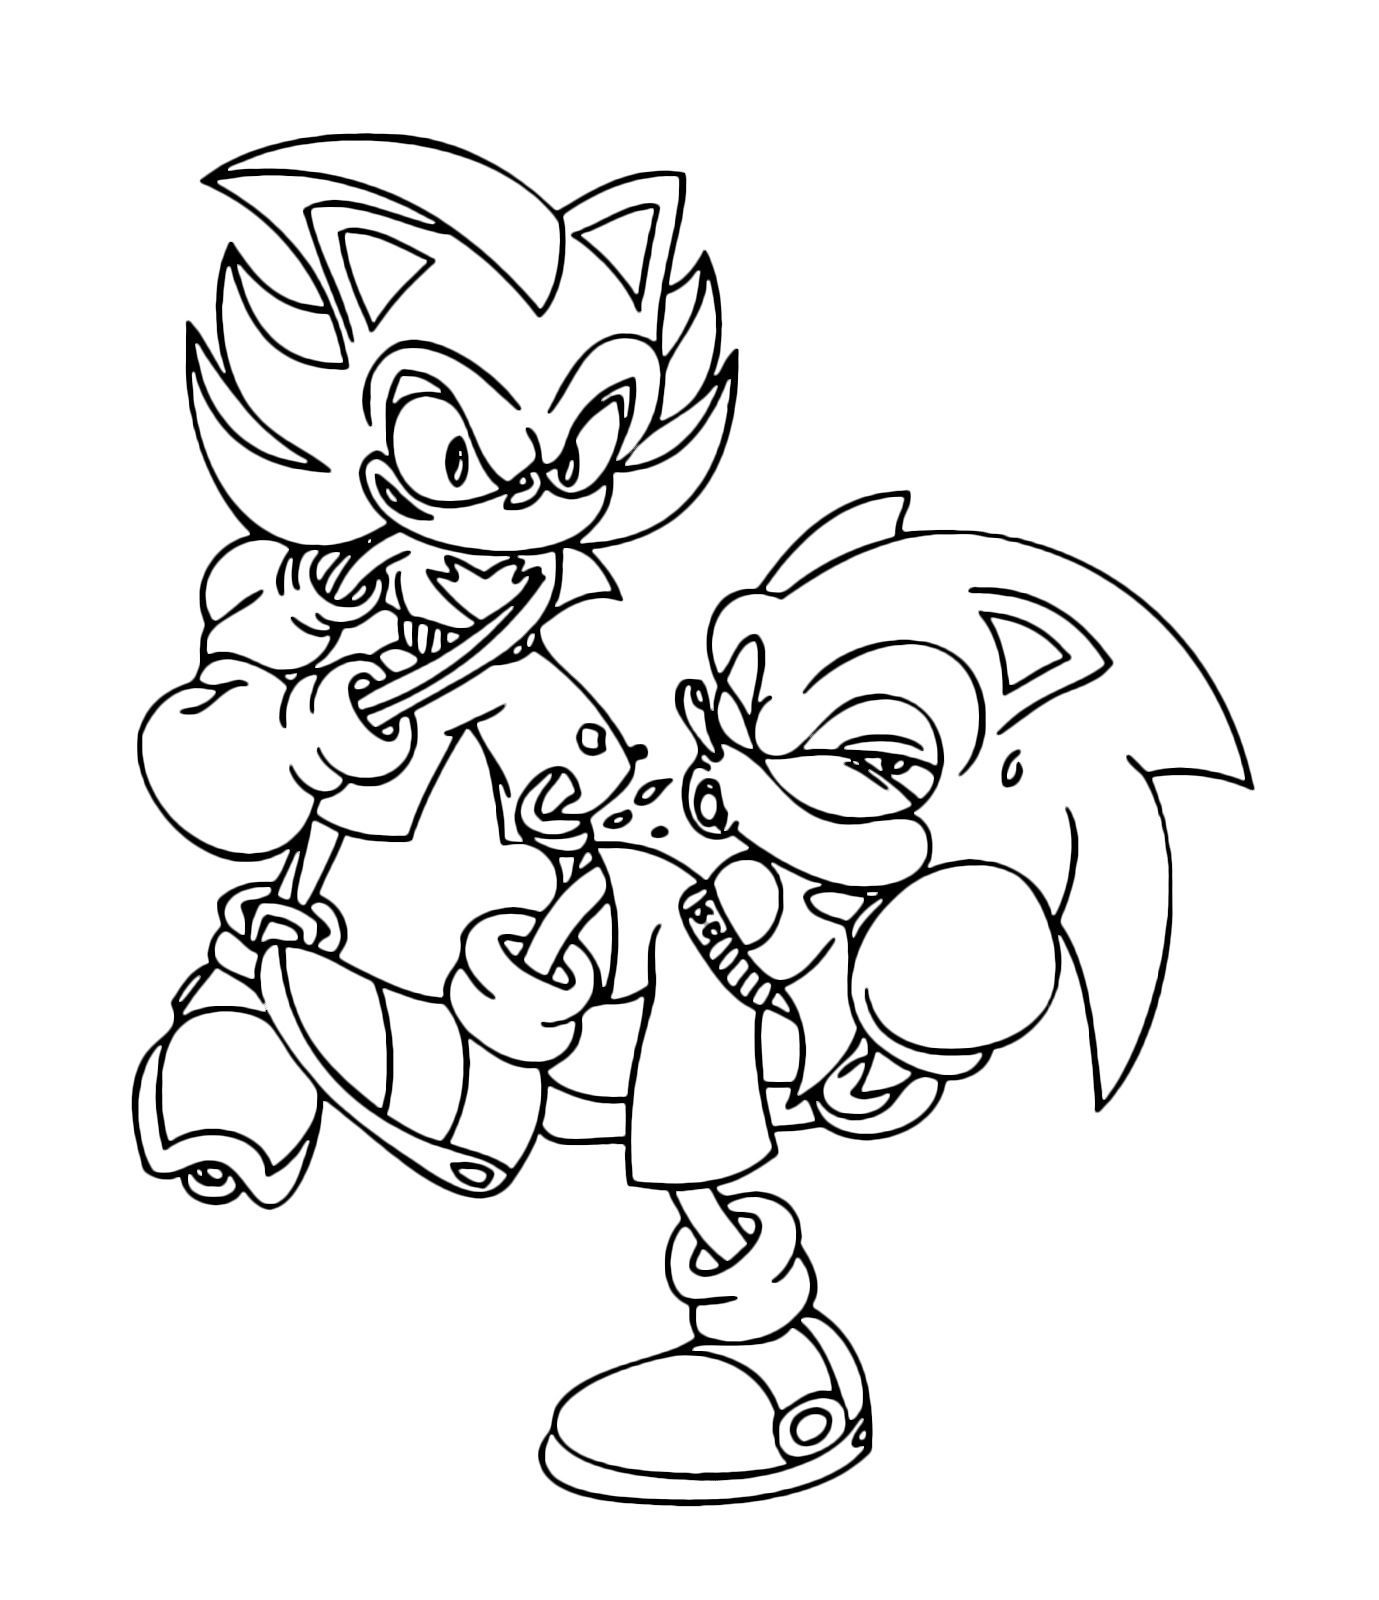 Monster sonic coloring pages ~ Sonic Boom - Shadow tira un pugno a Sonic